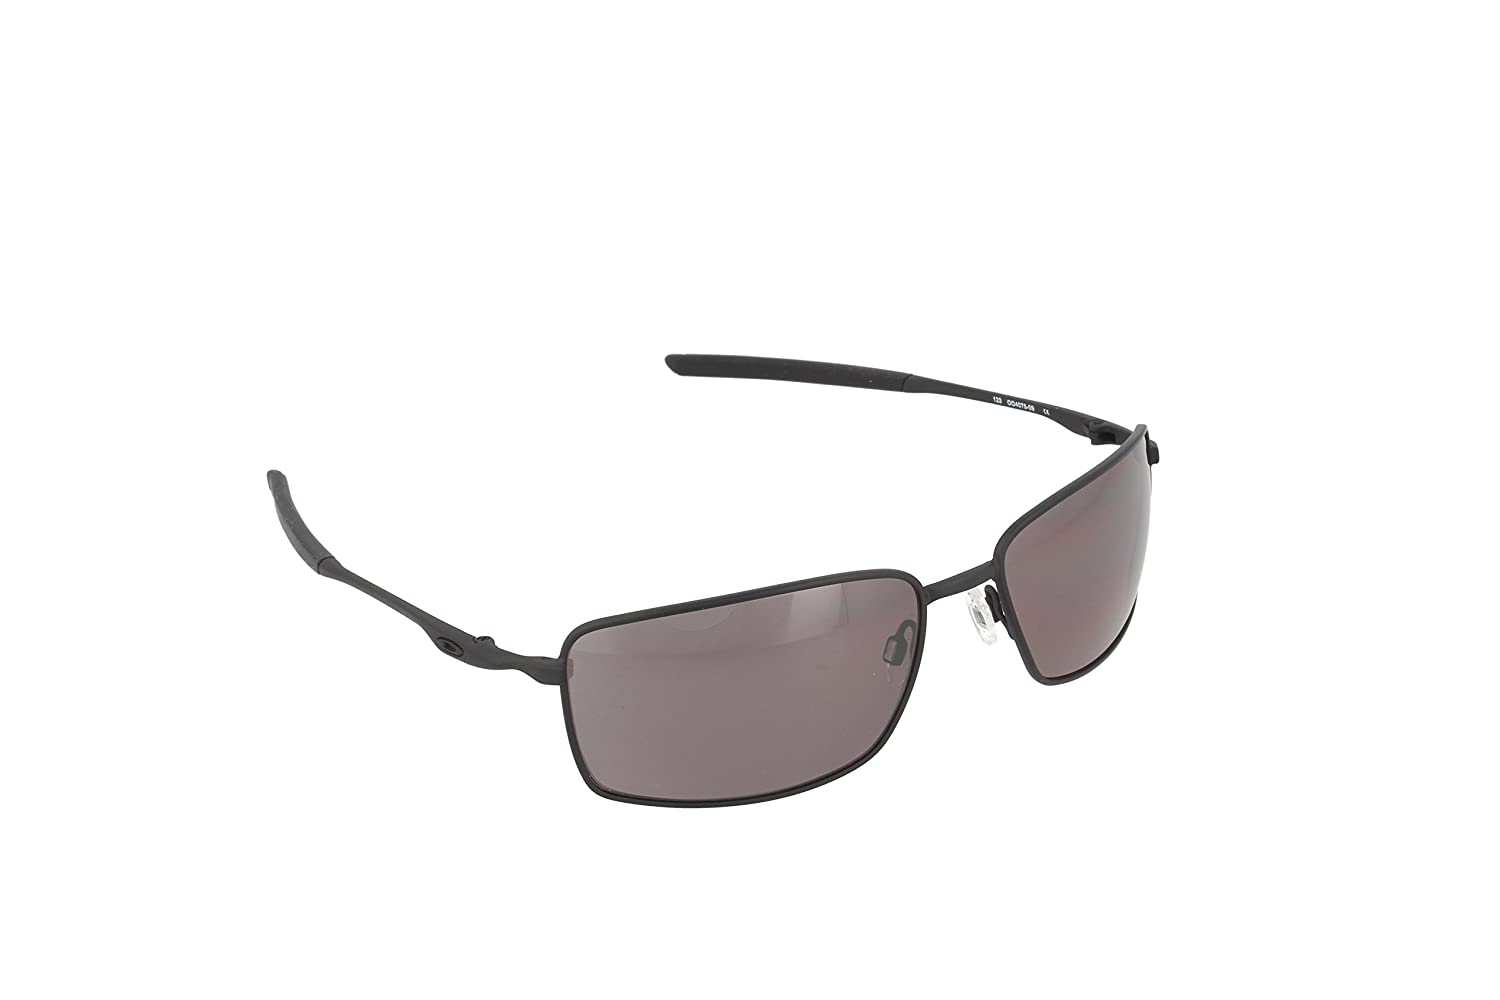 63c4af130e Amazon.com  Oakley Mens Square Wire Covert Sunglasses One Size Matte Black Prizm  Daily Polarized  Clothing